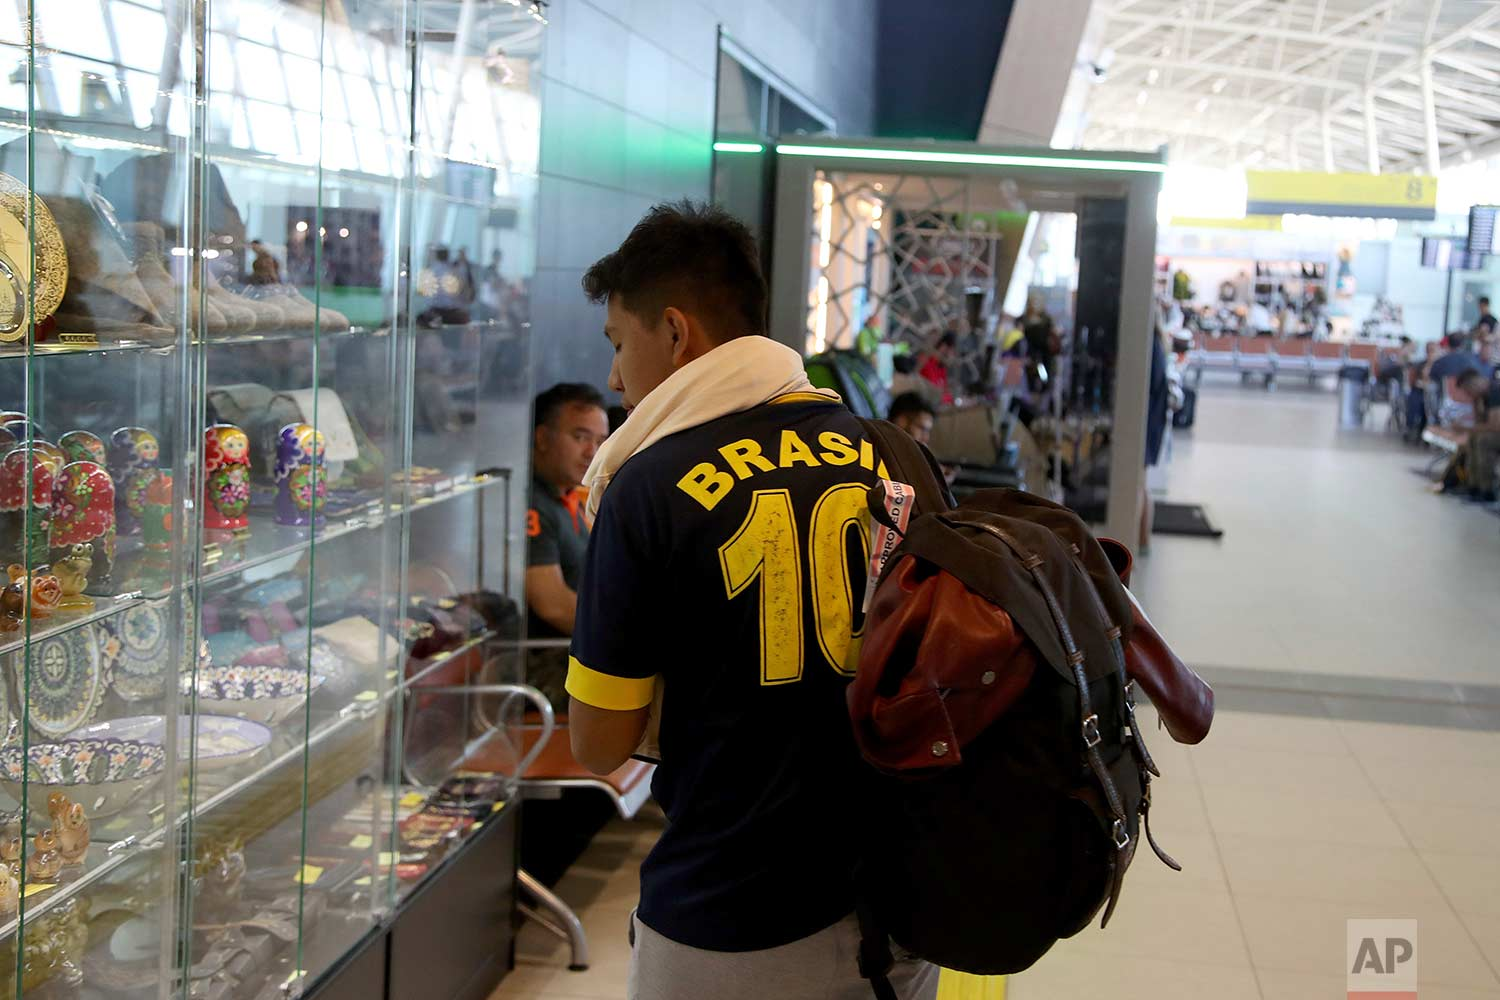 In this Friday, June 22, 2018 photo, a supporter of Brazil looks at souvenirs on sale at the Kazan International Airport in Kazan, Russia. (AP Photo/Thanassis Stavrakis)